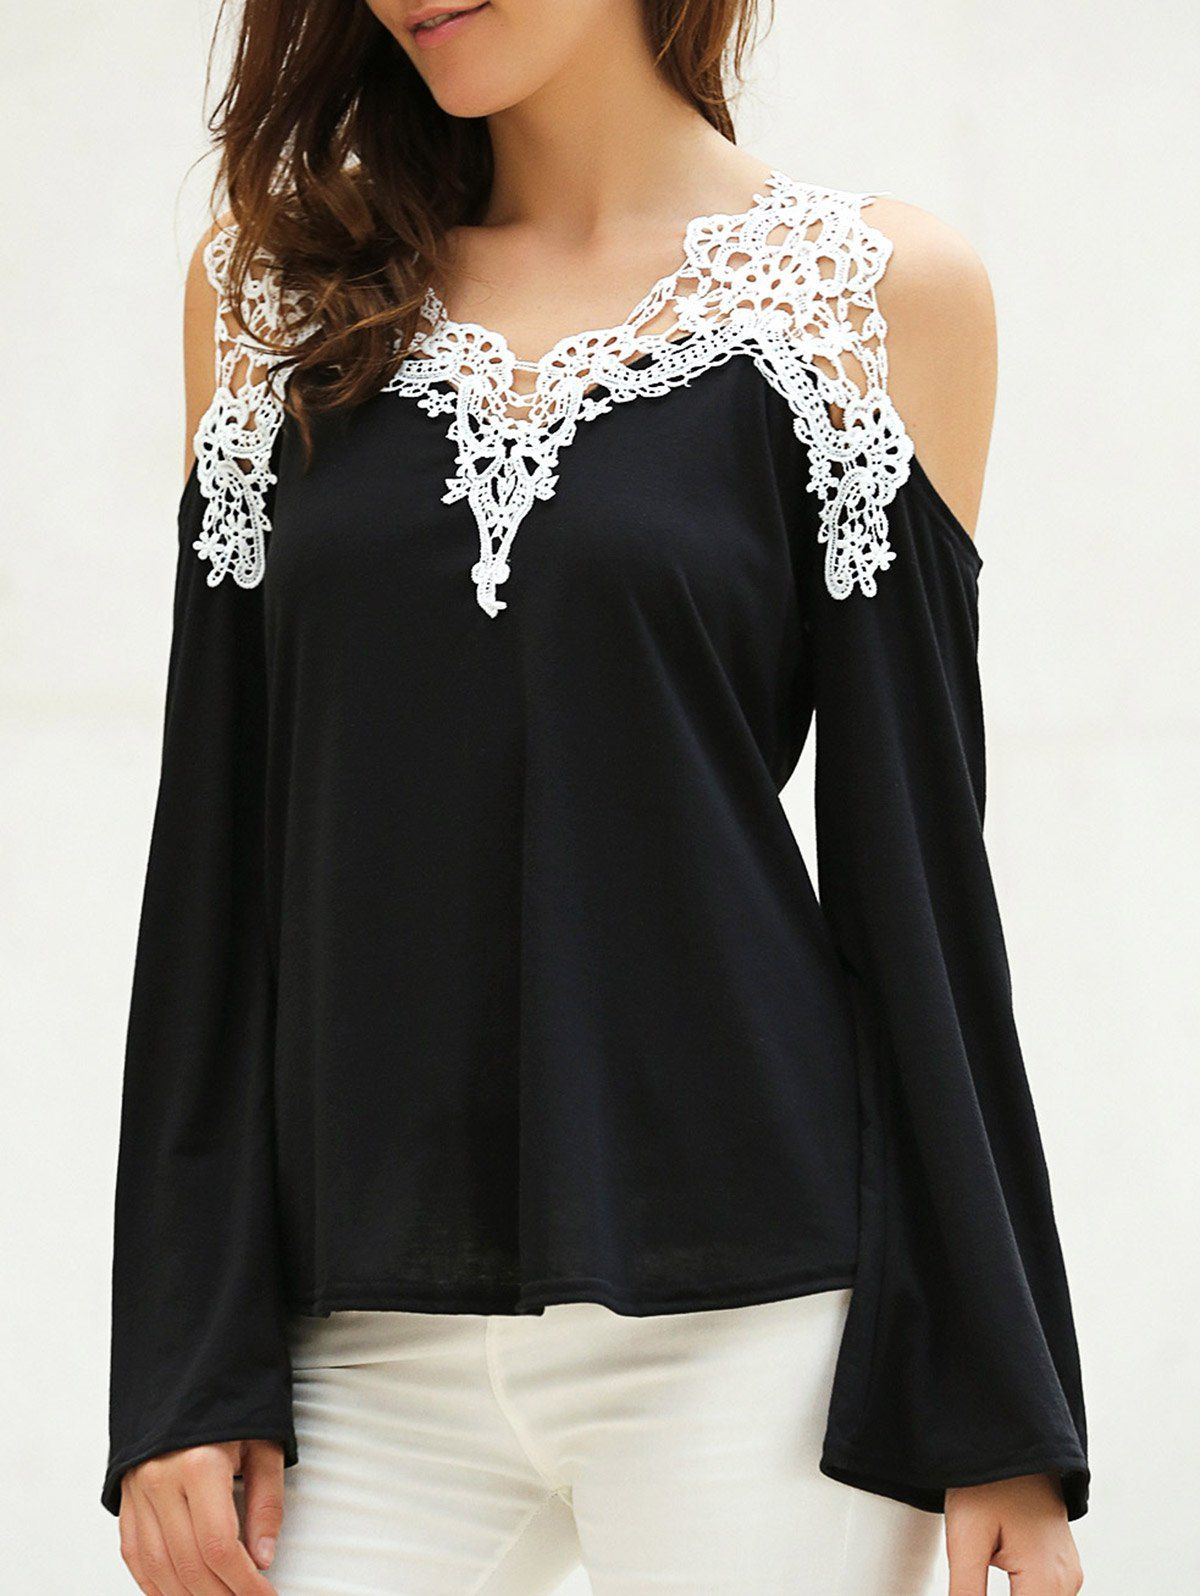 4891a1717 Love Love LOVE this Top! Sexy Black and White Lace Stylish V-Neck Long  Sleeve Cut Out Spliced Women s T-Shirt  Black and White  Lace Crochet   Cold Shoulder ...